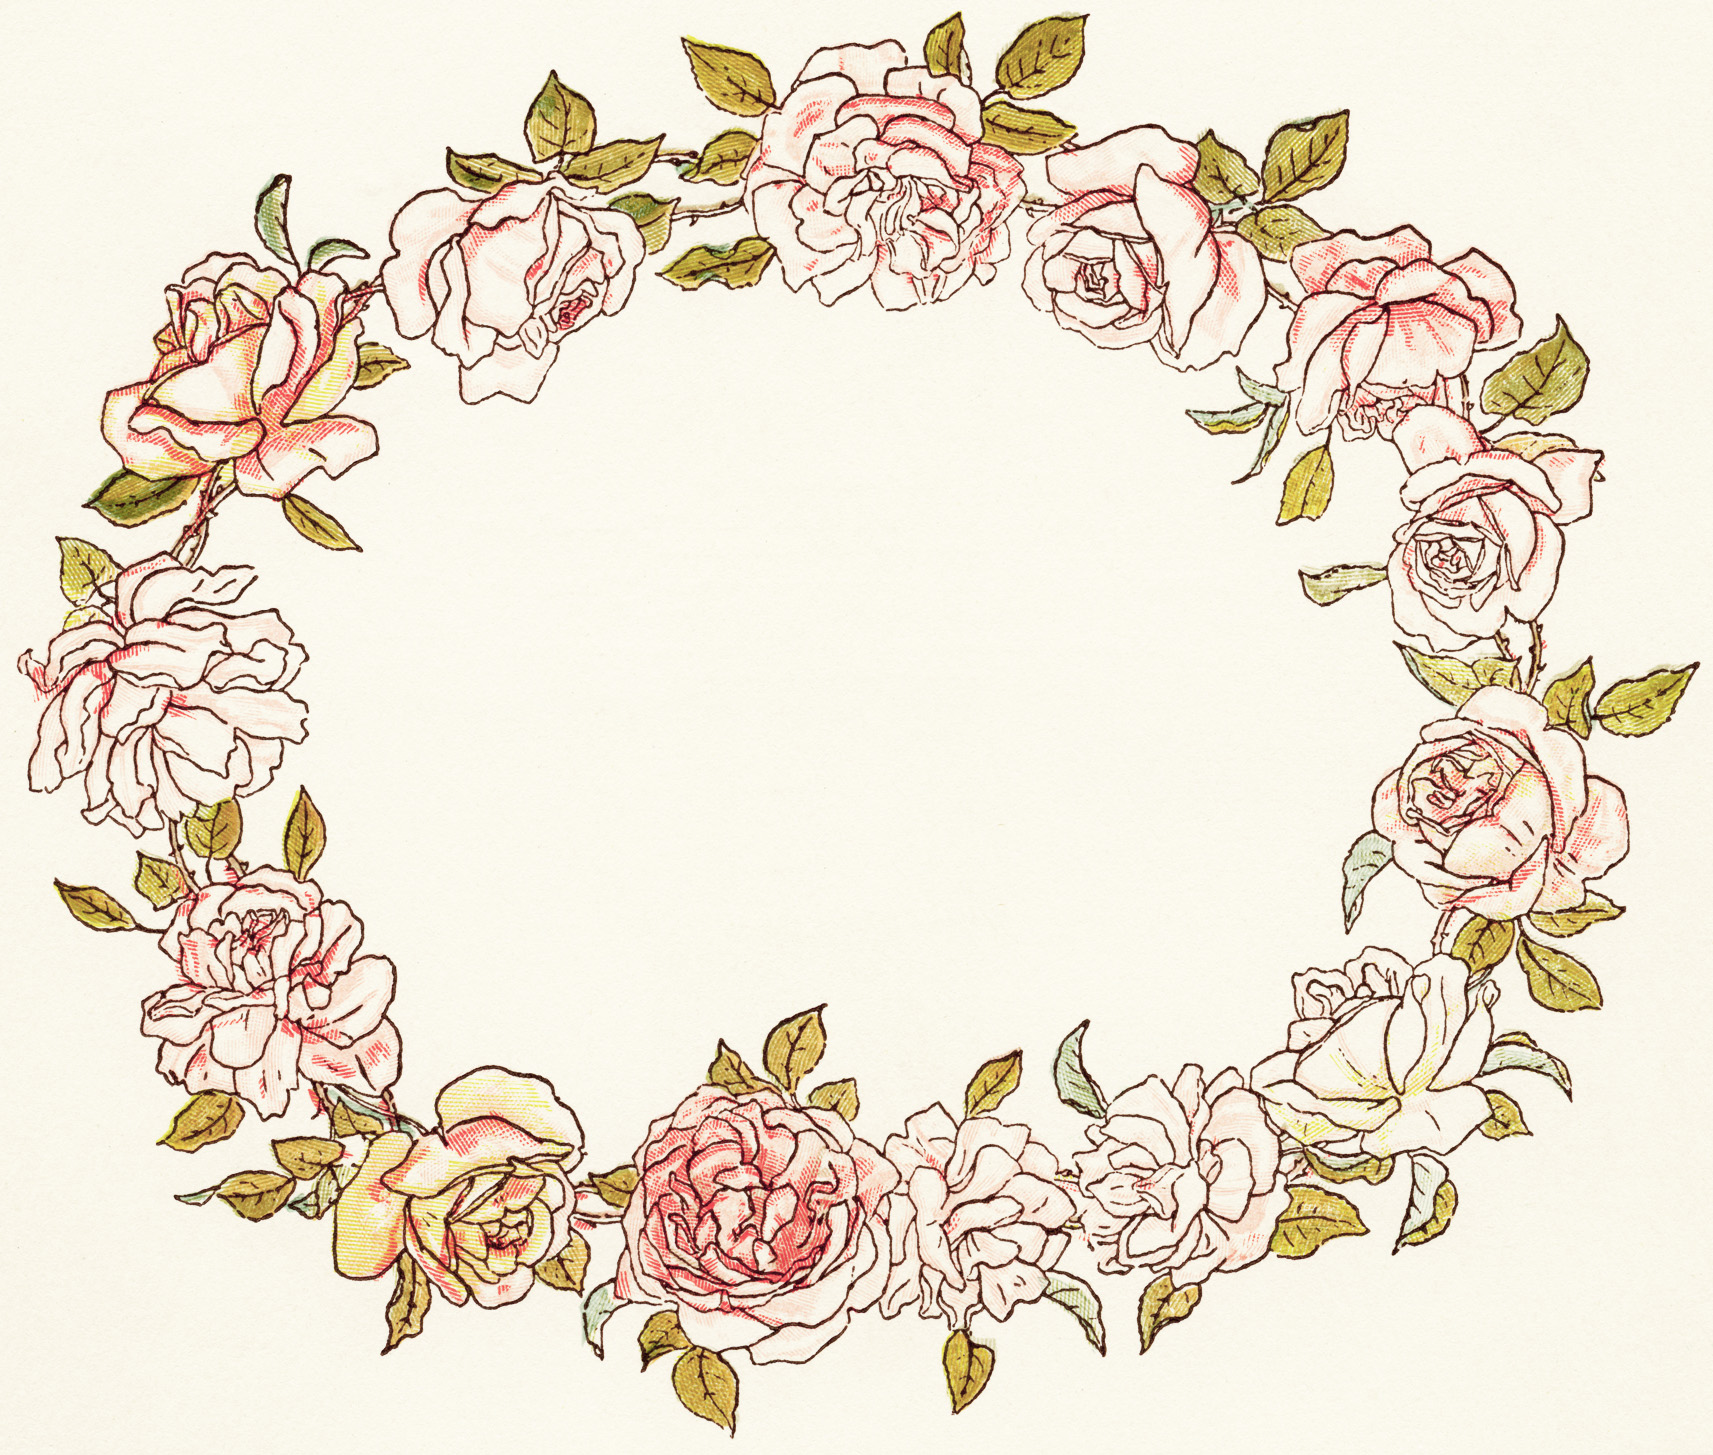 floral wreath free vintage illustration old design shop blog happy dog clipart free happy dog clipart